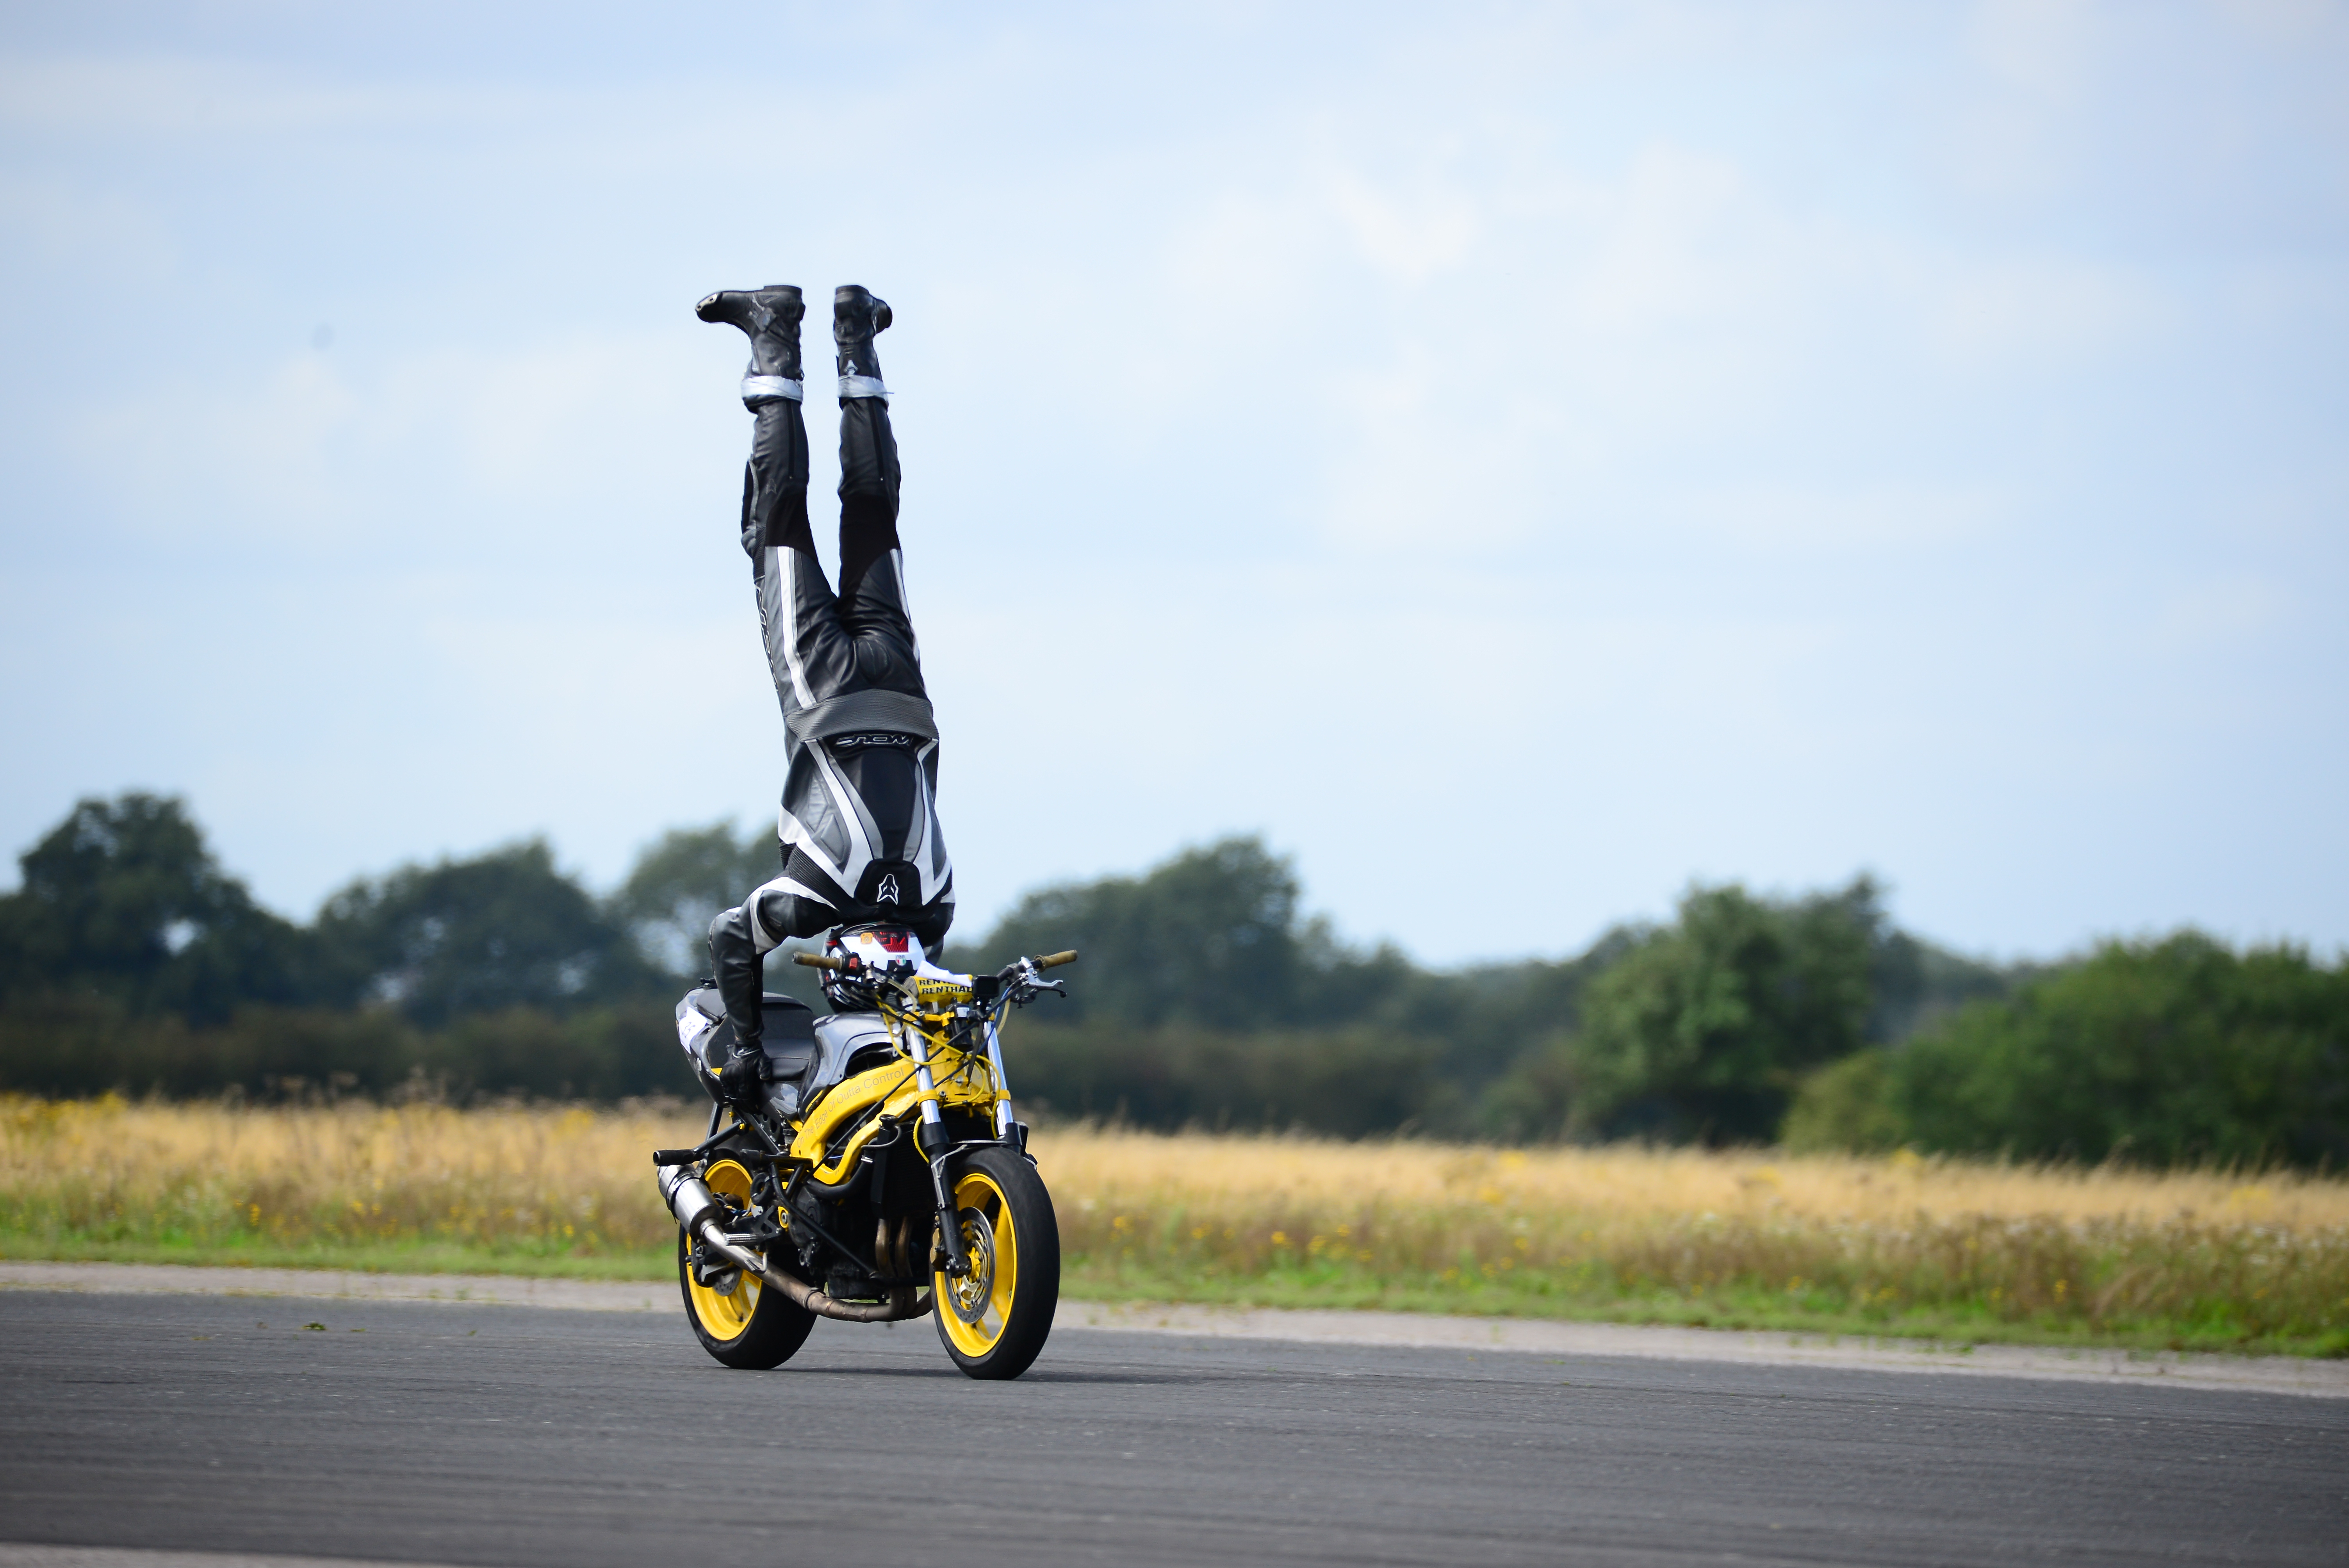 Marco George hit 76mph during his world record attempt in North Yorkshire